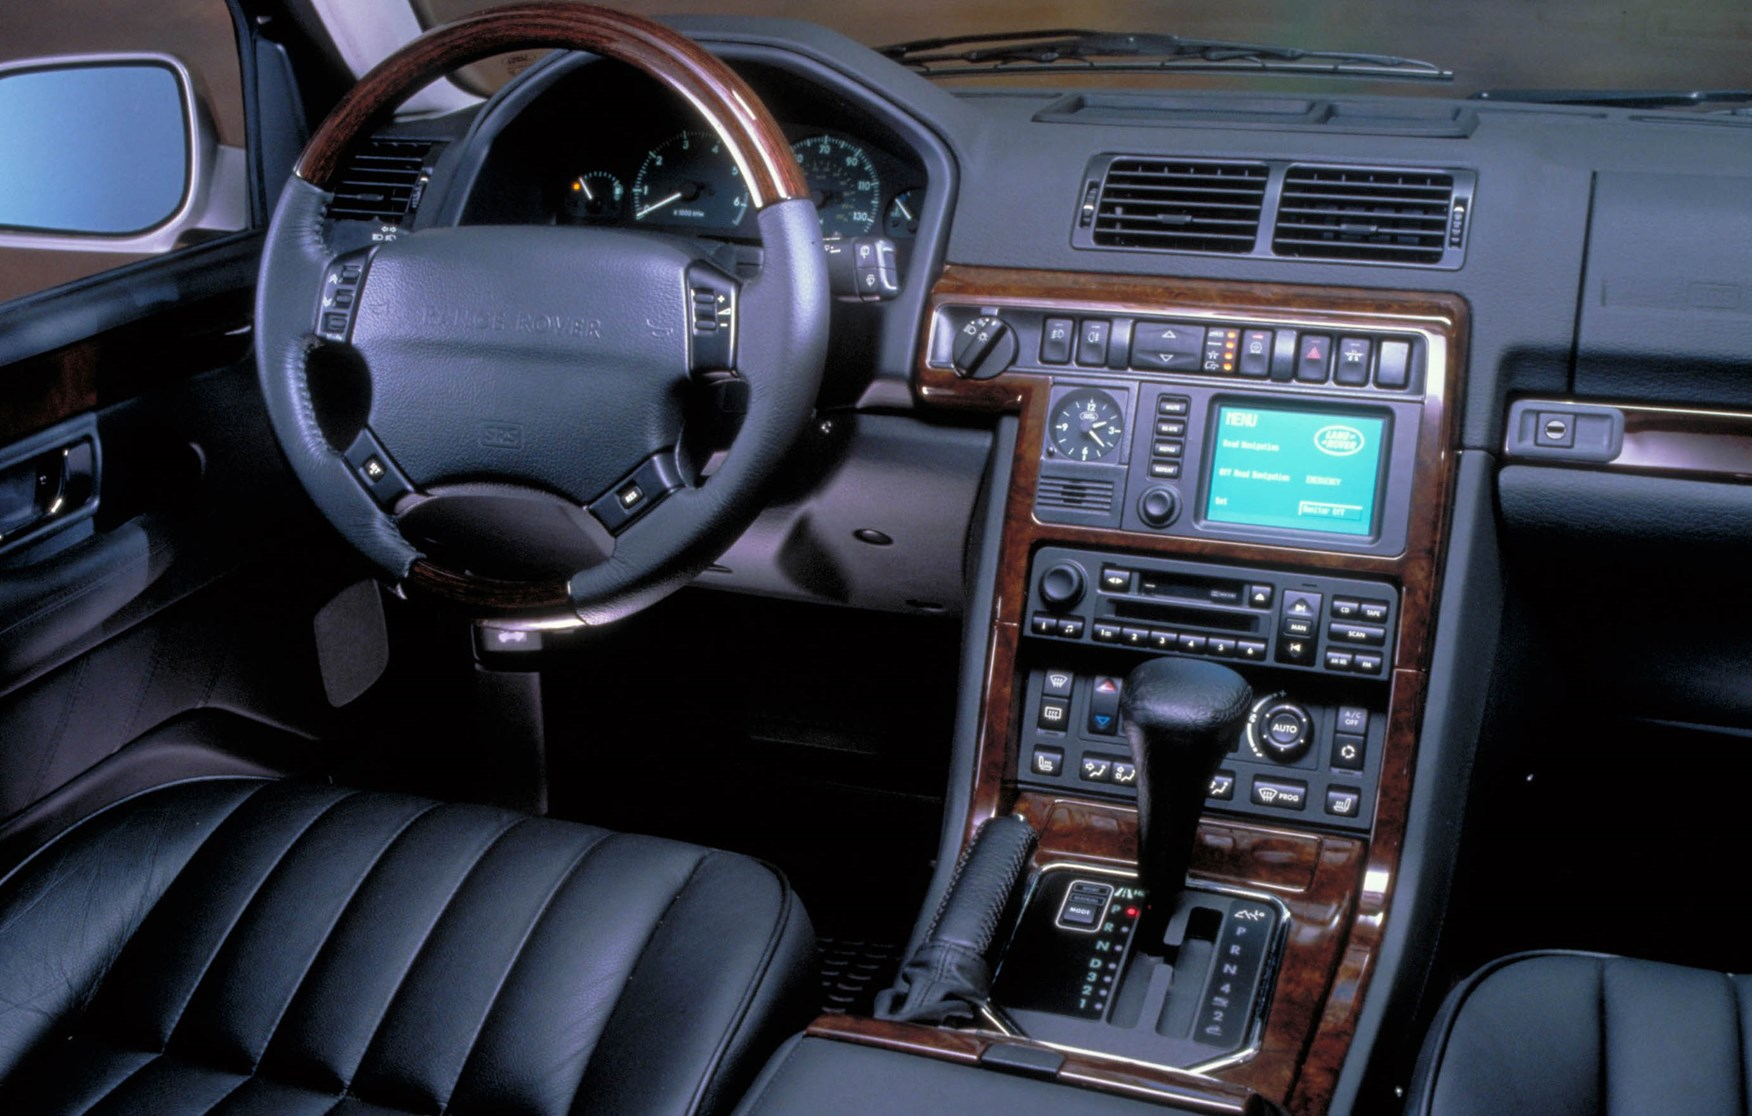 View all images of the land rover range rover 94 02